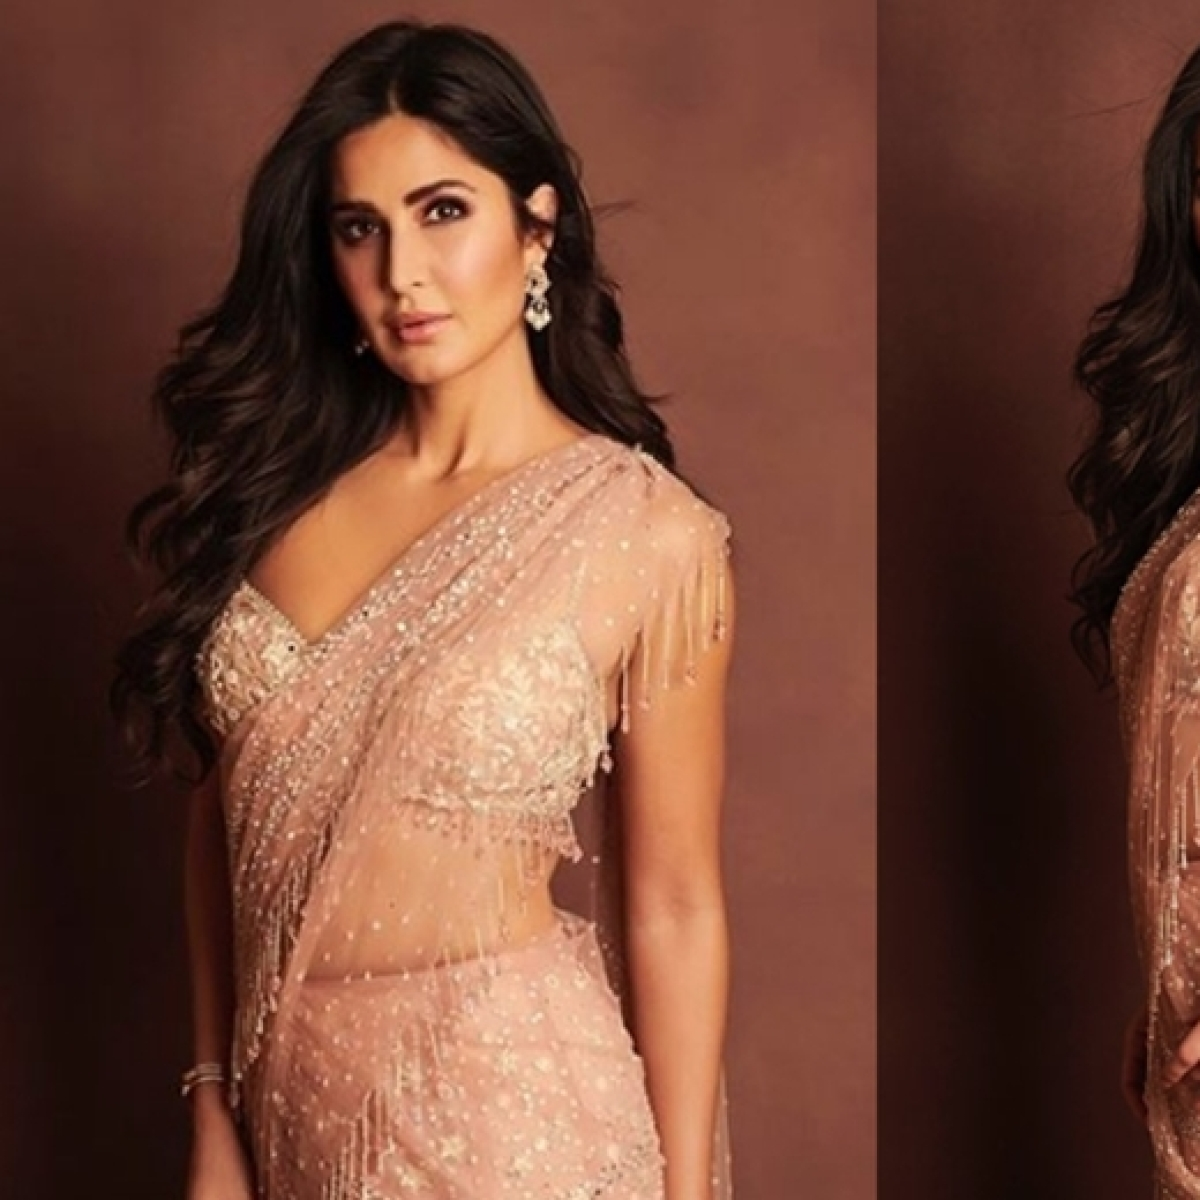 I'm just sexy for you: Katrina Kaif shines in a royal peach sequined saree